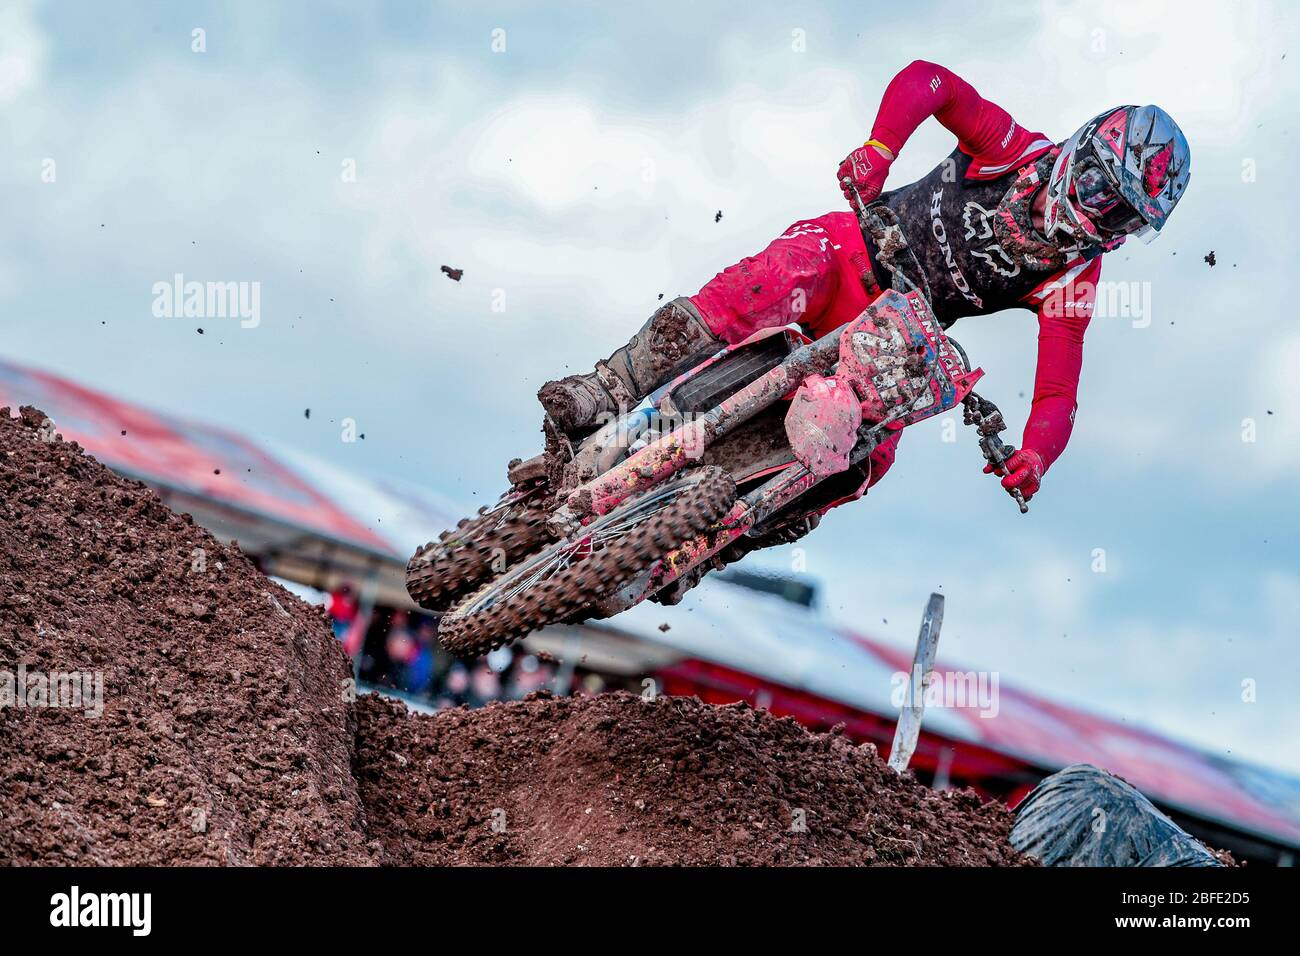 Winchester, Italy. 01st Mar, 2020. tim gajser (slo) team hrc classe mxgp during MXGP of Great Britain, Motocross in winchester, Italy, March 01 2020 Credit: Independent Photo Agency/Alamy Live News Stock Photo